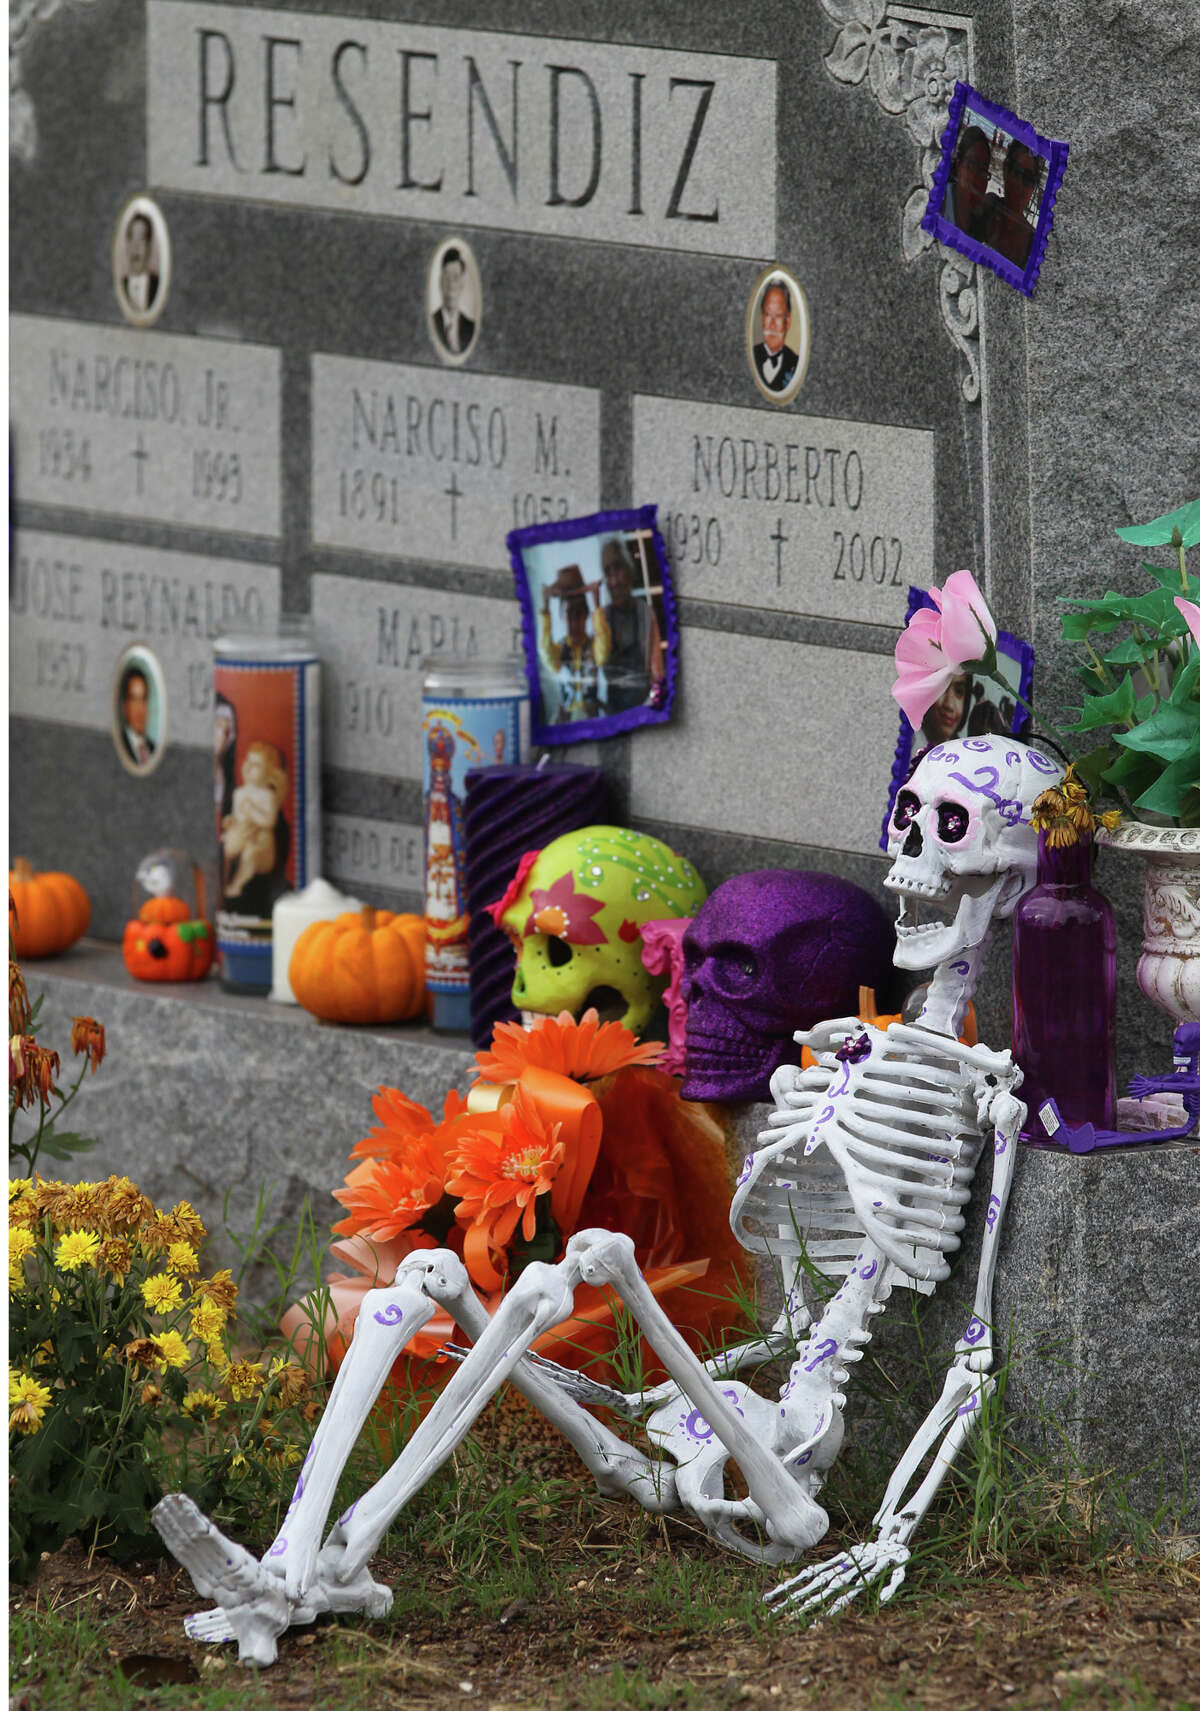 A grave is decorated with skeletons on the Catholic feast known as All Soul's Day, Friday, Nov. 2, 2012. The grave is located at San Fernando Cemetery No. 2. Families have made pilgrimages to the West Side cemetery each Nov. 2 since its opening in 1922 - to decorate graves, leave offerings and pray for the departed.